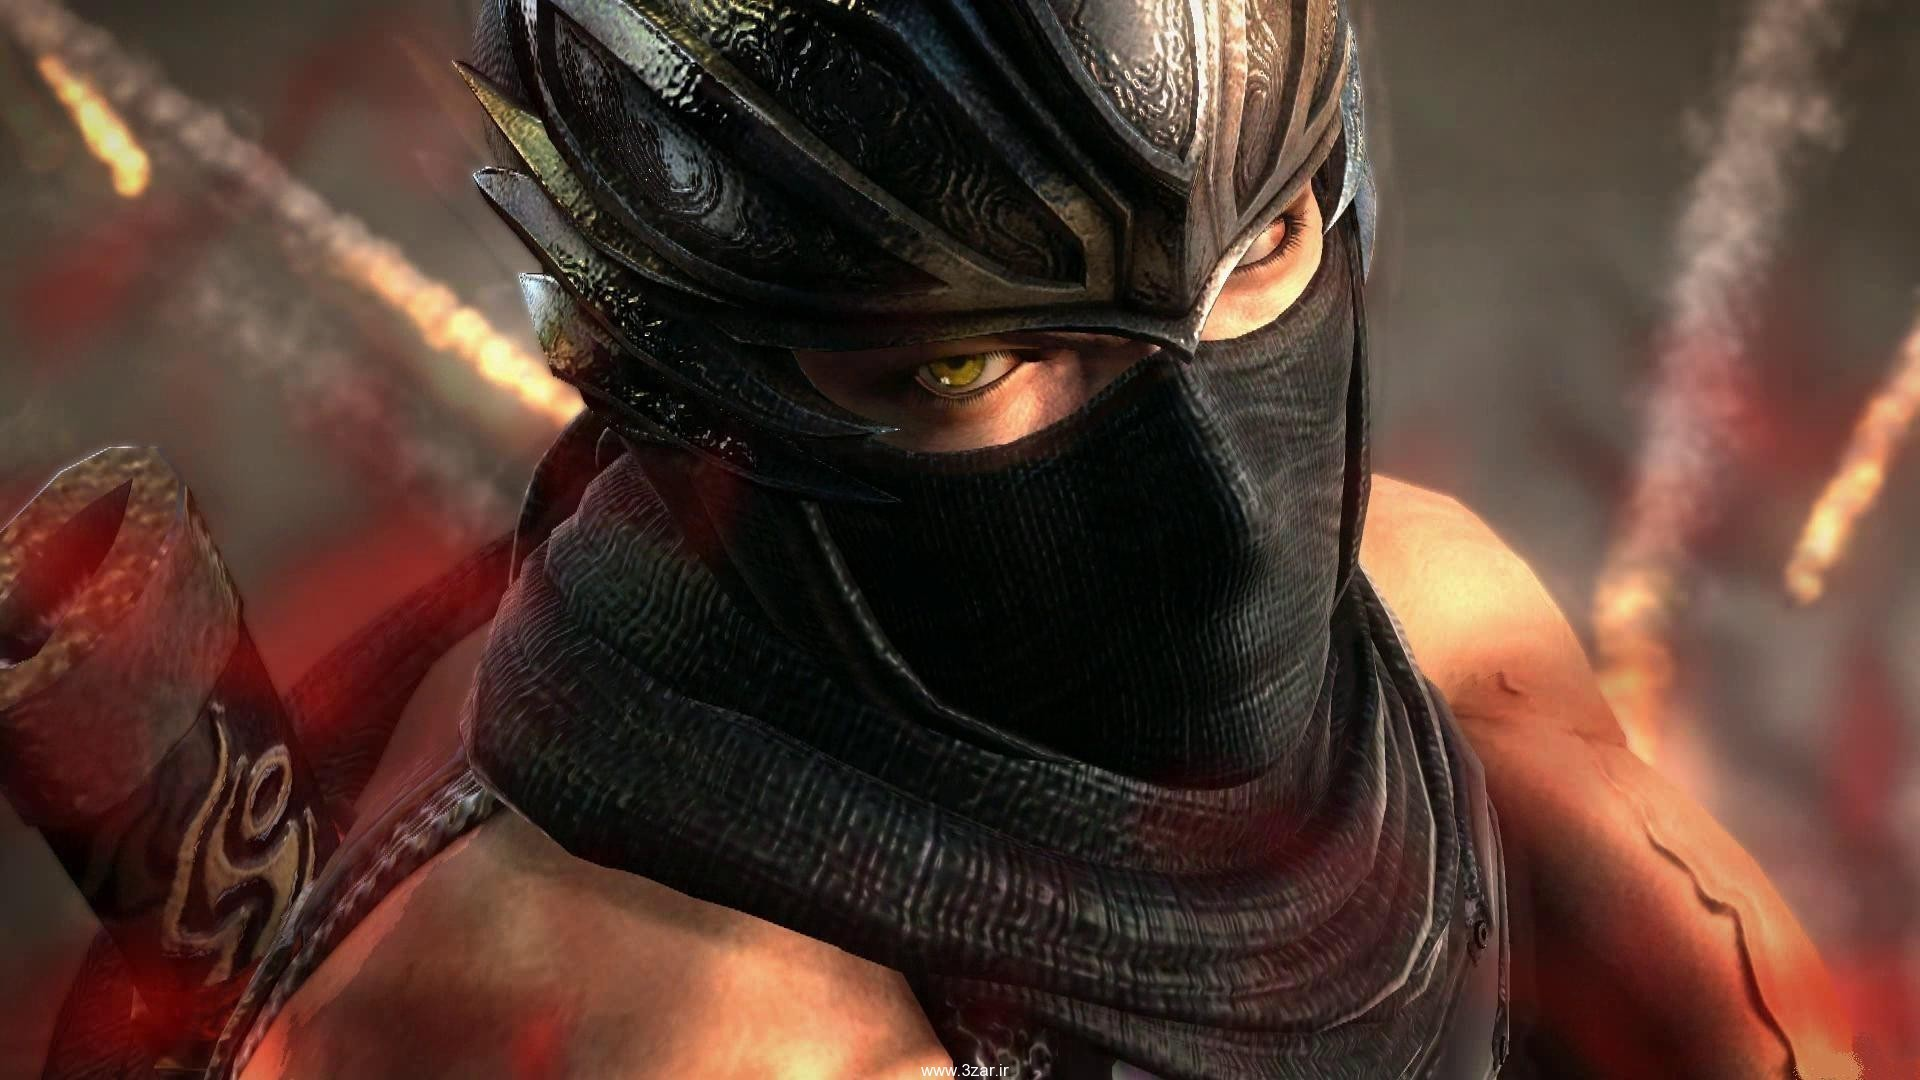 1920x1080 NINJA GAIDEN fantasy anime warrior g wallpaper |  | 212452 |  WallpaperUP